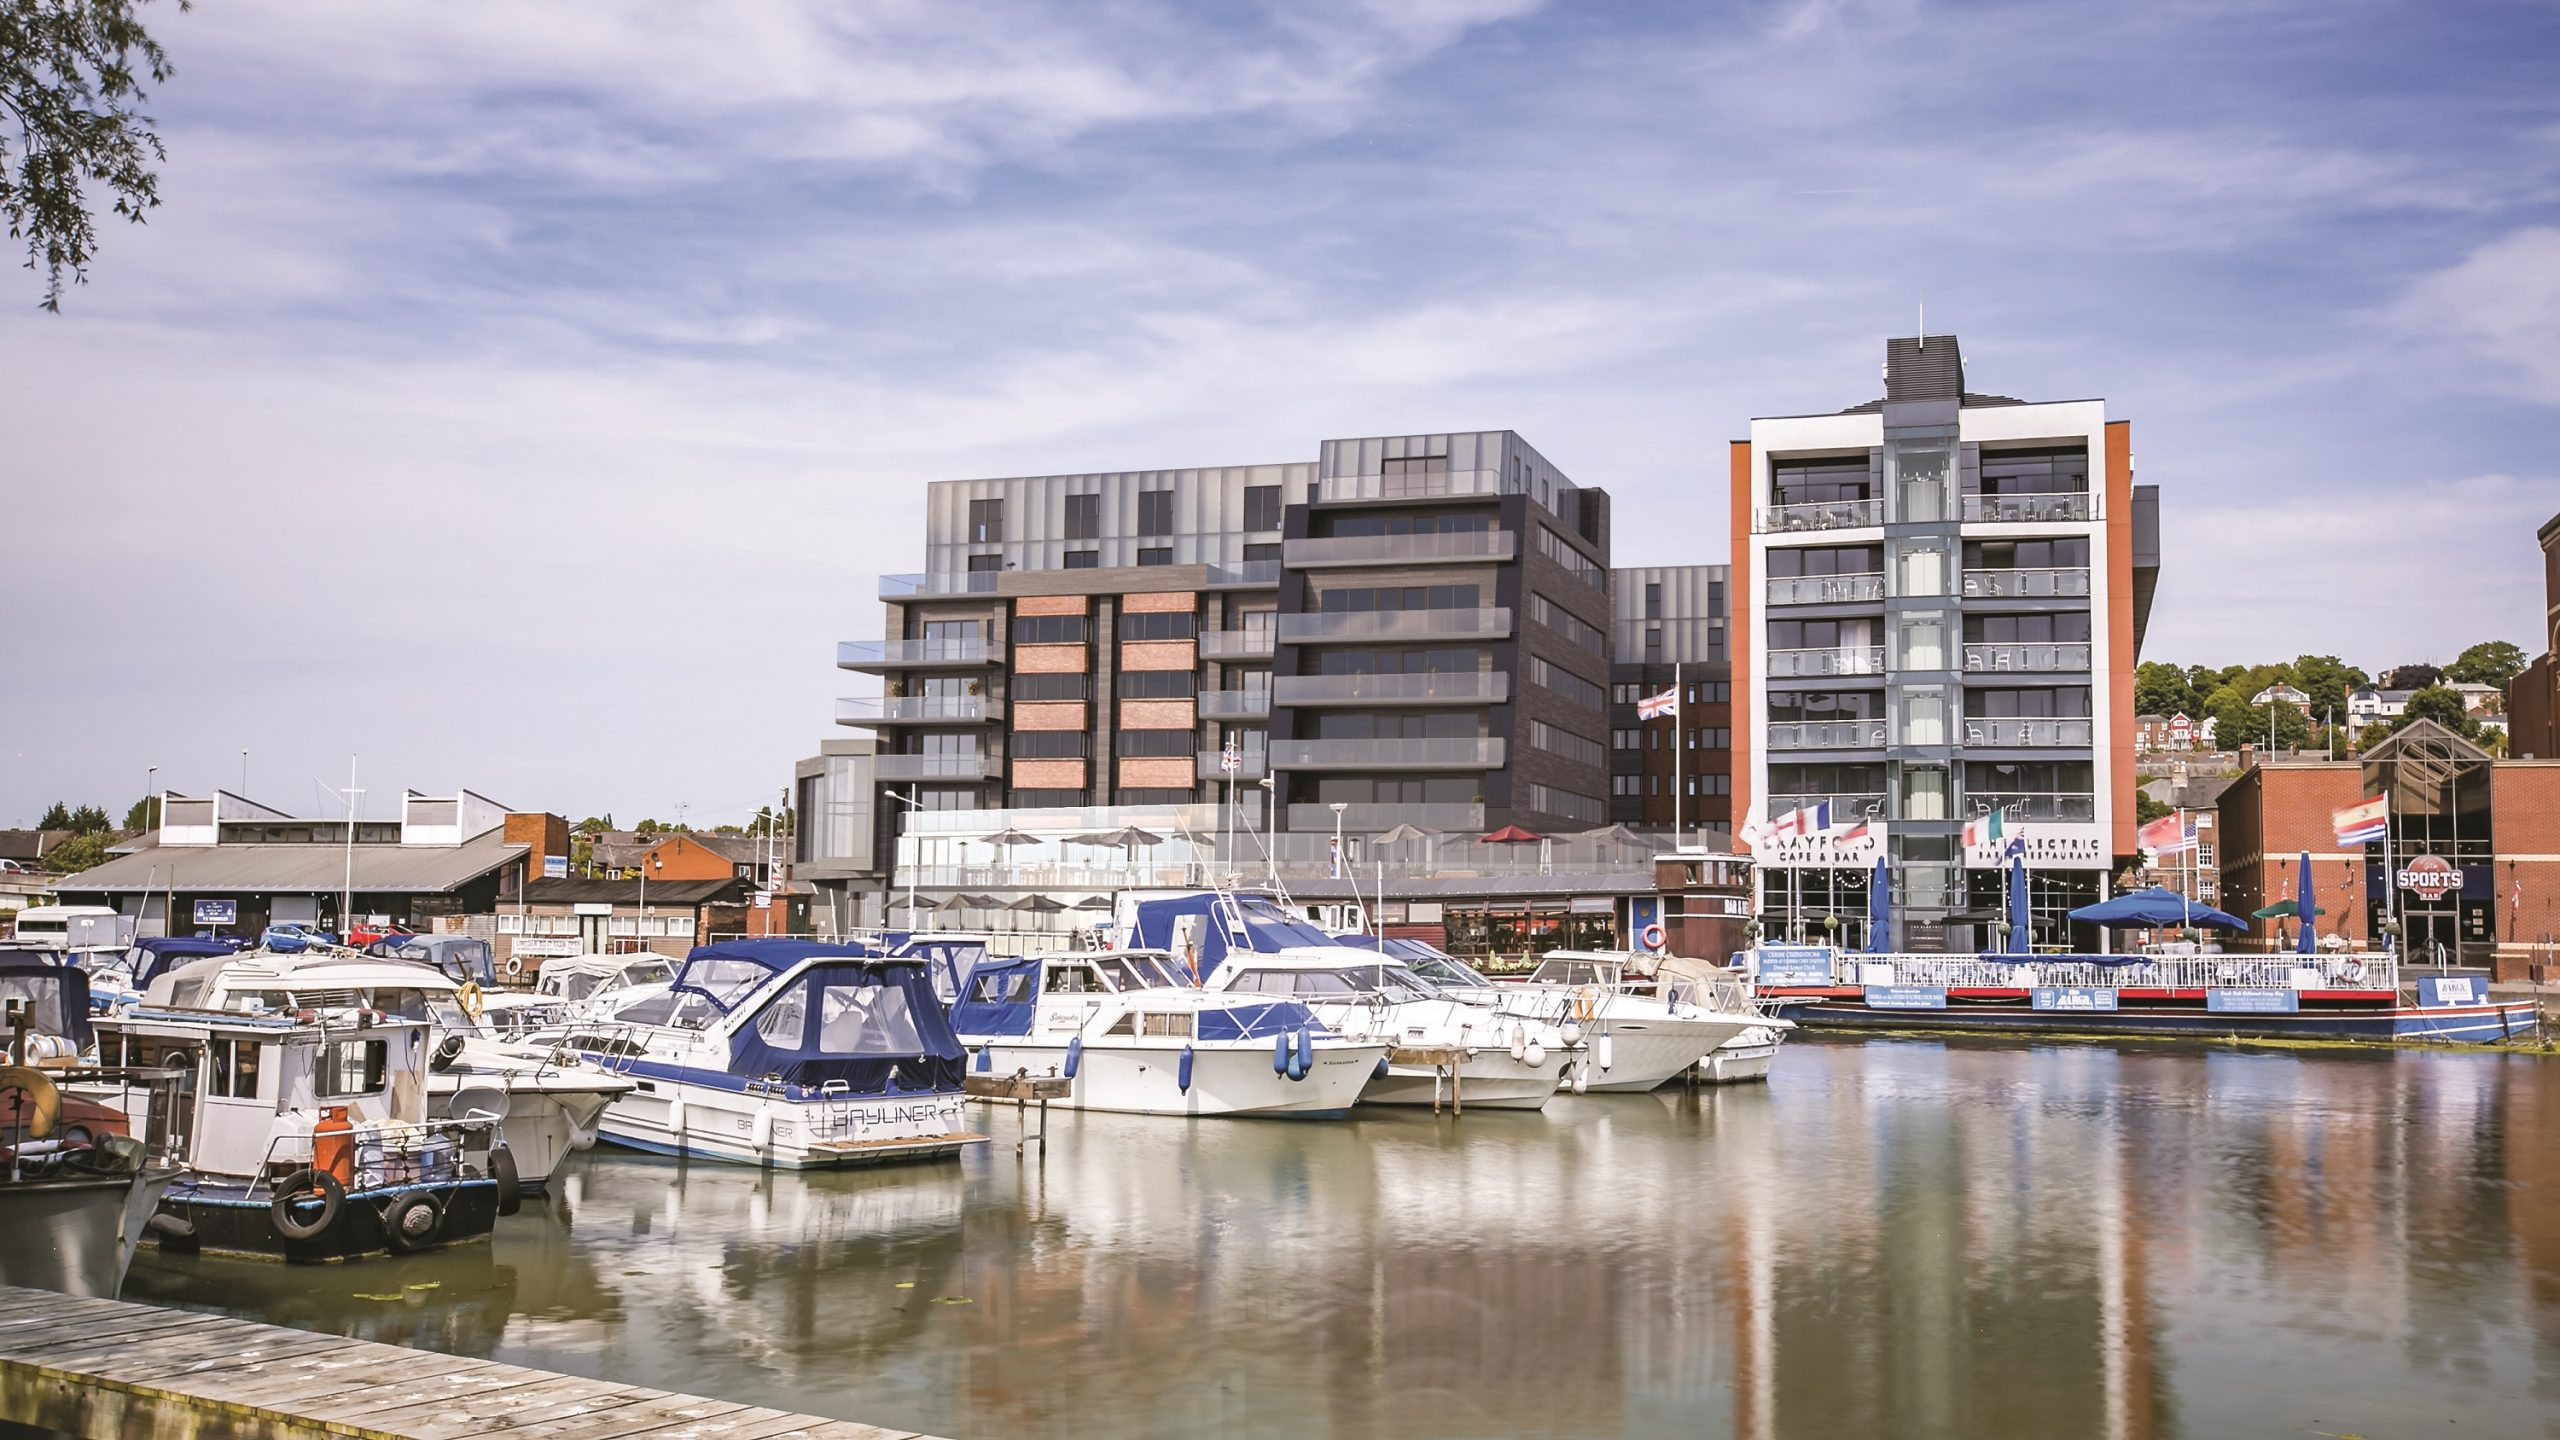 Last chance to snap up luxury waterside apartments in one of the UK's safest counties